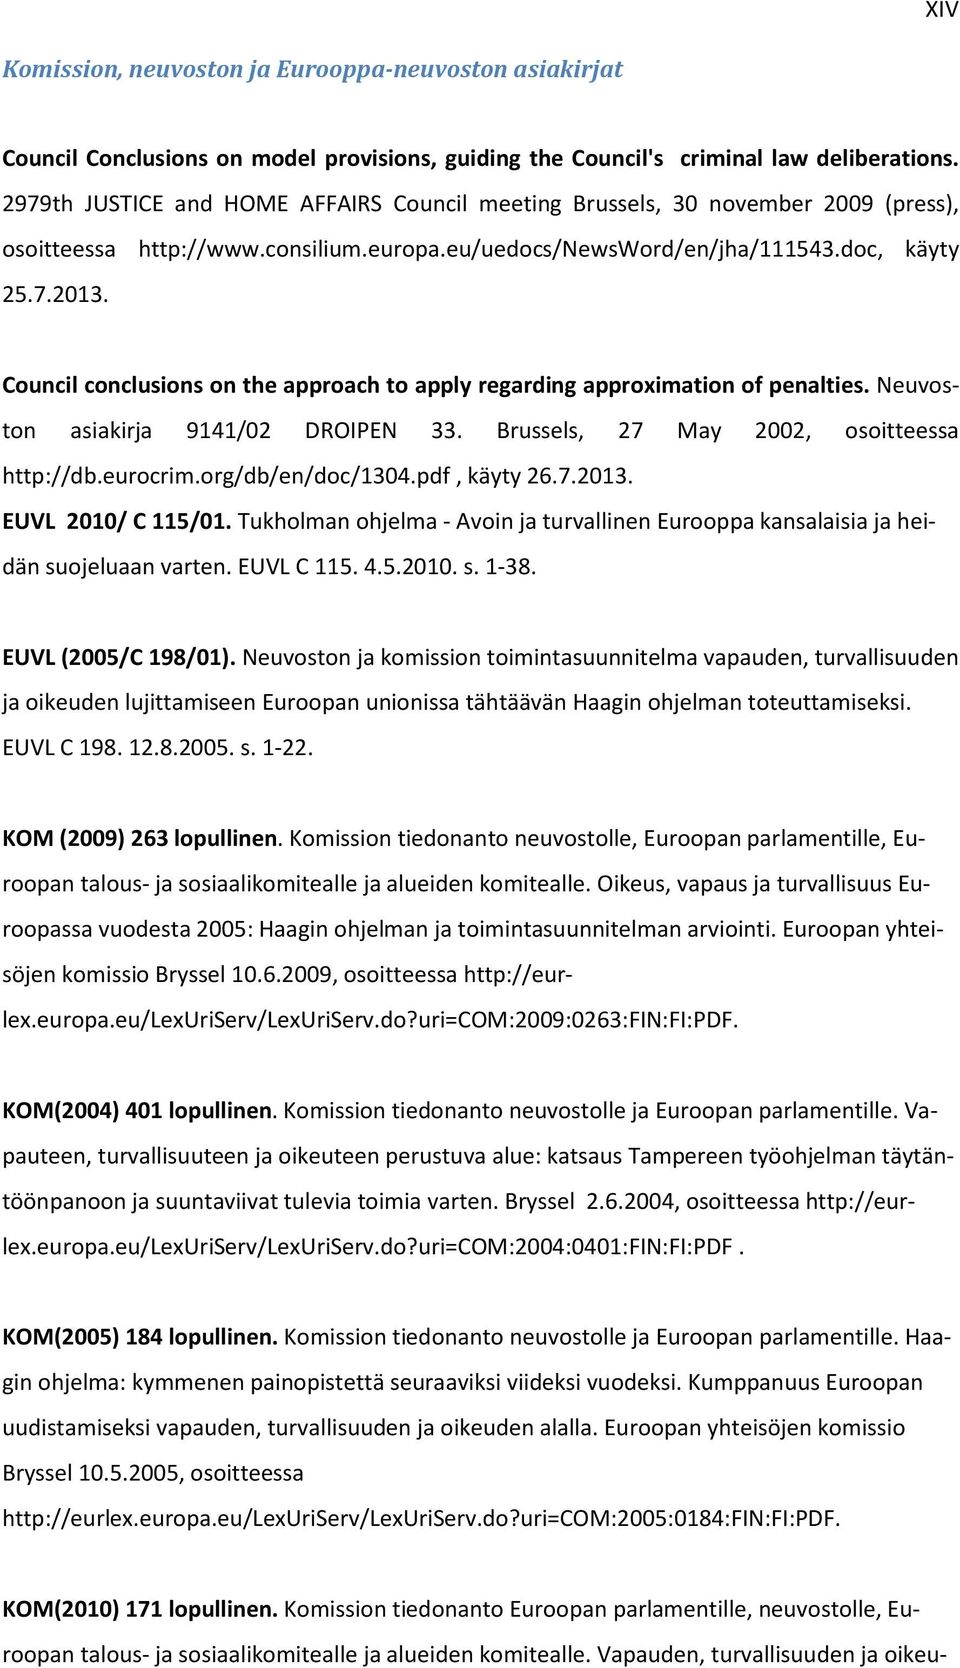 Council conclusions on the approach to apply regarding approximation of penalties. Neuvoston asiakirja 9141/02 DROIPEN 33. Brussels, 27 May 2002, osoitteessa http://db.eurocrim.org/db/en/doc/1304.